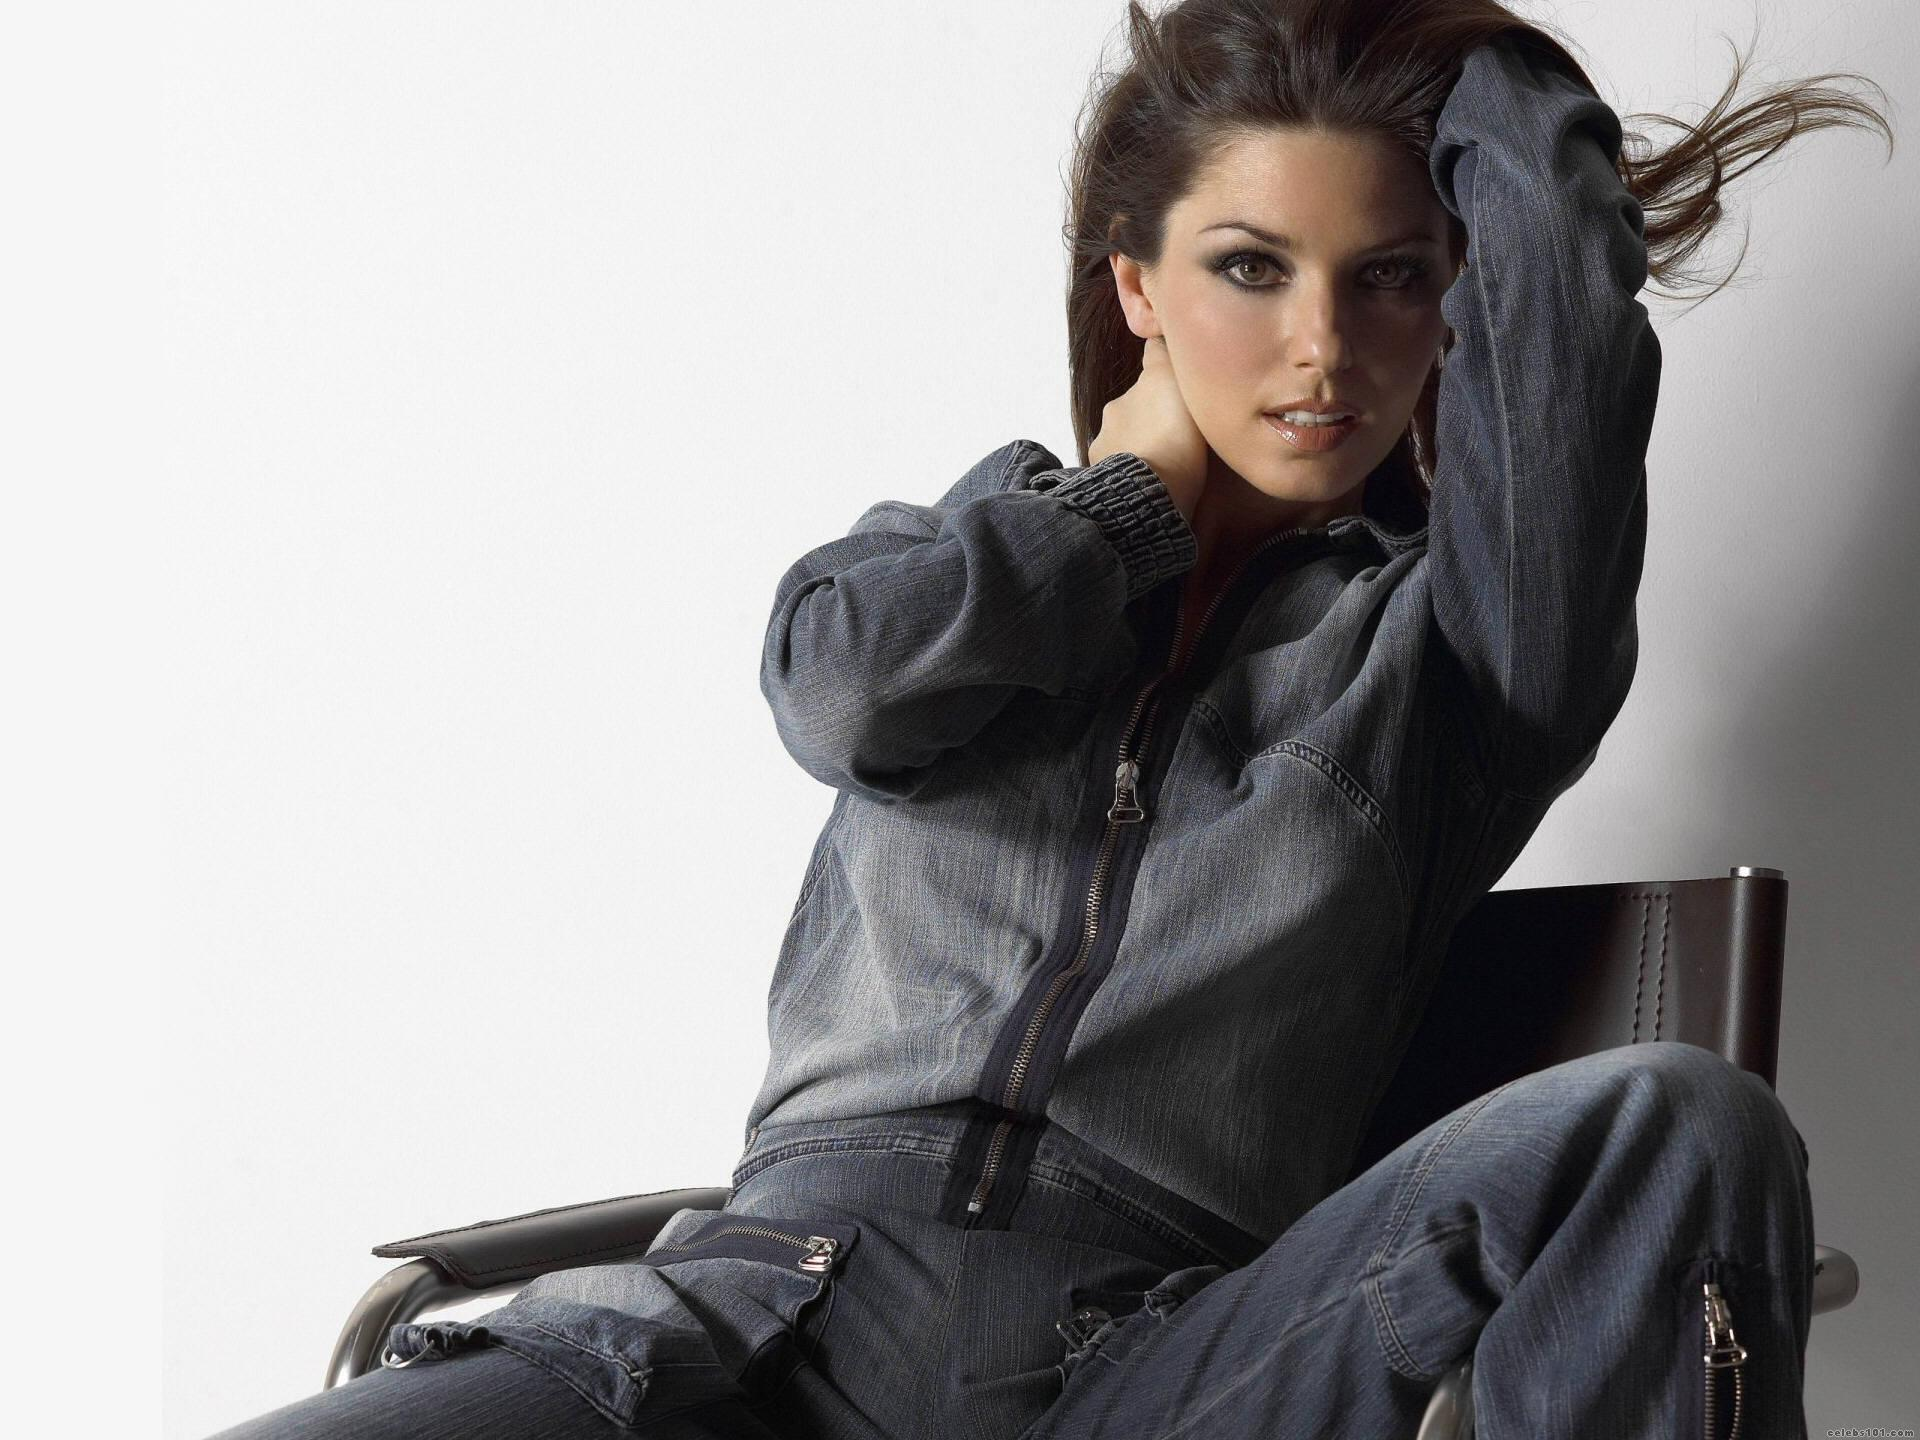 Shania Twain High quality wallpaper size 1920x1440 of Shania Twain 1920x1440